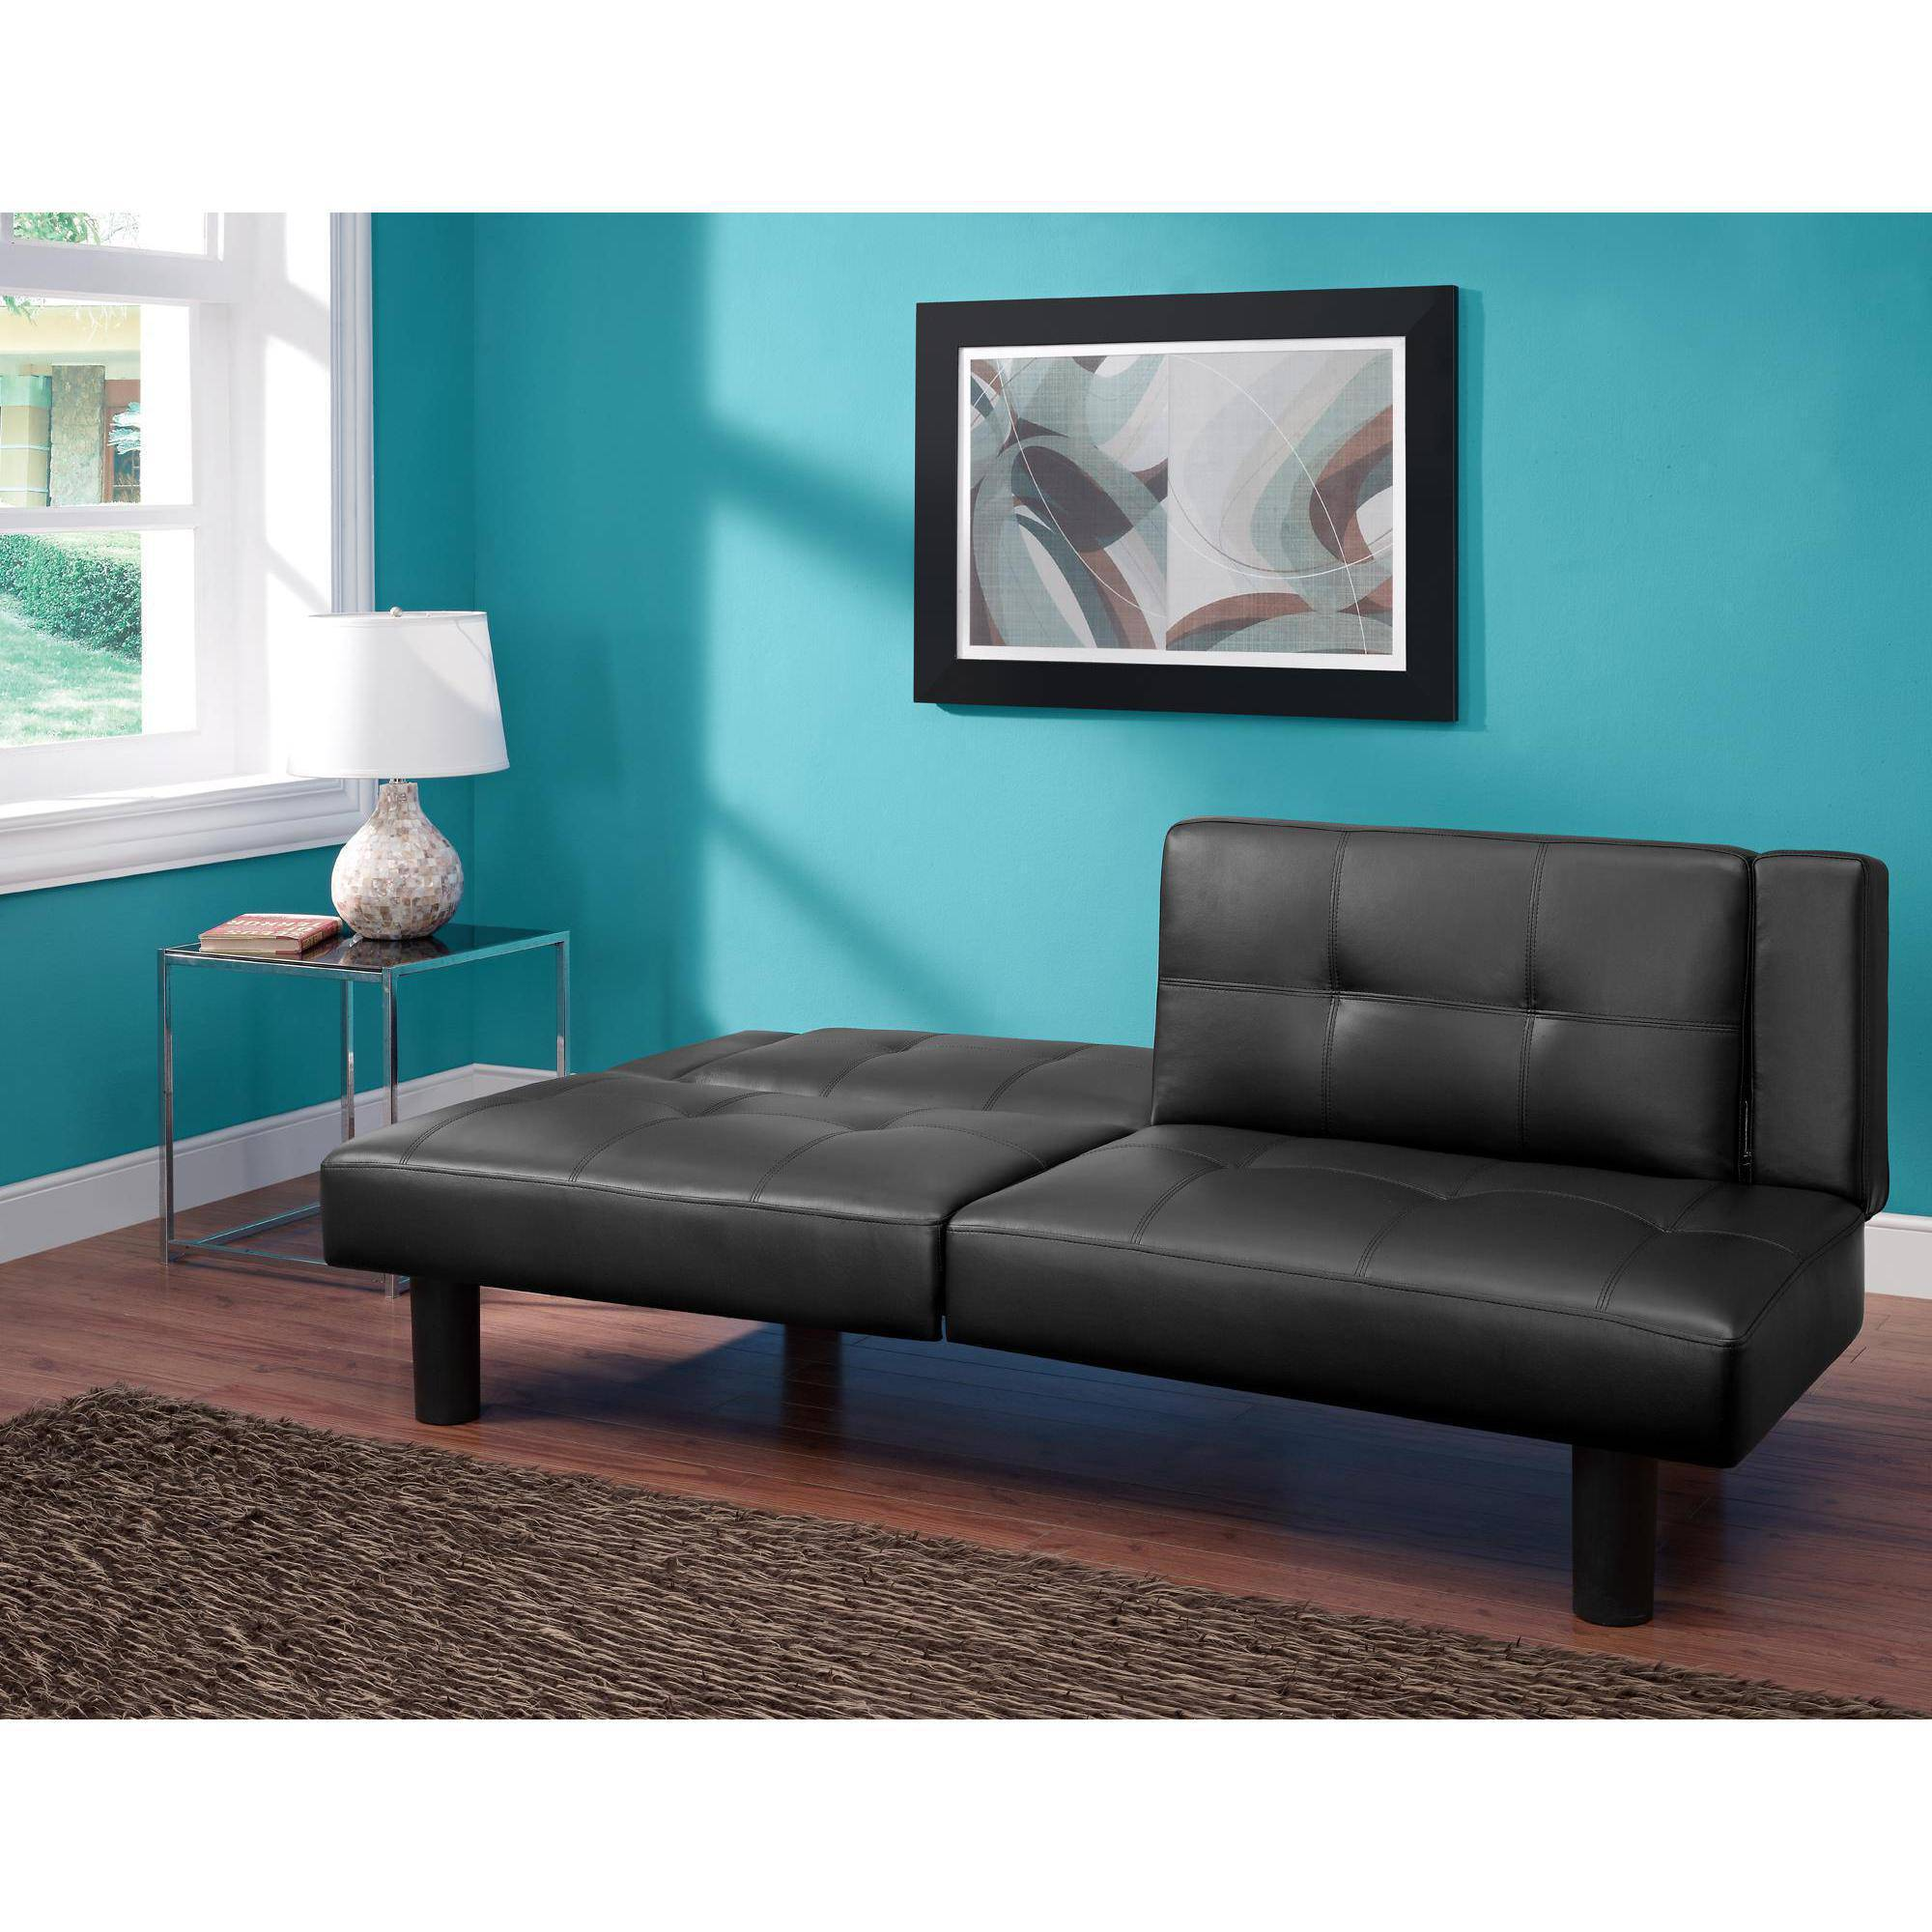 futons futon beds sofa beds  walmartcom - mainstays connectrix faux leather futon multiple colors